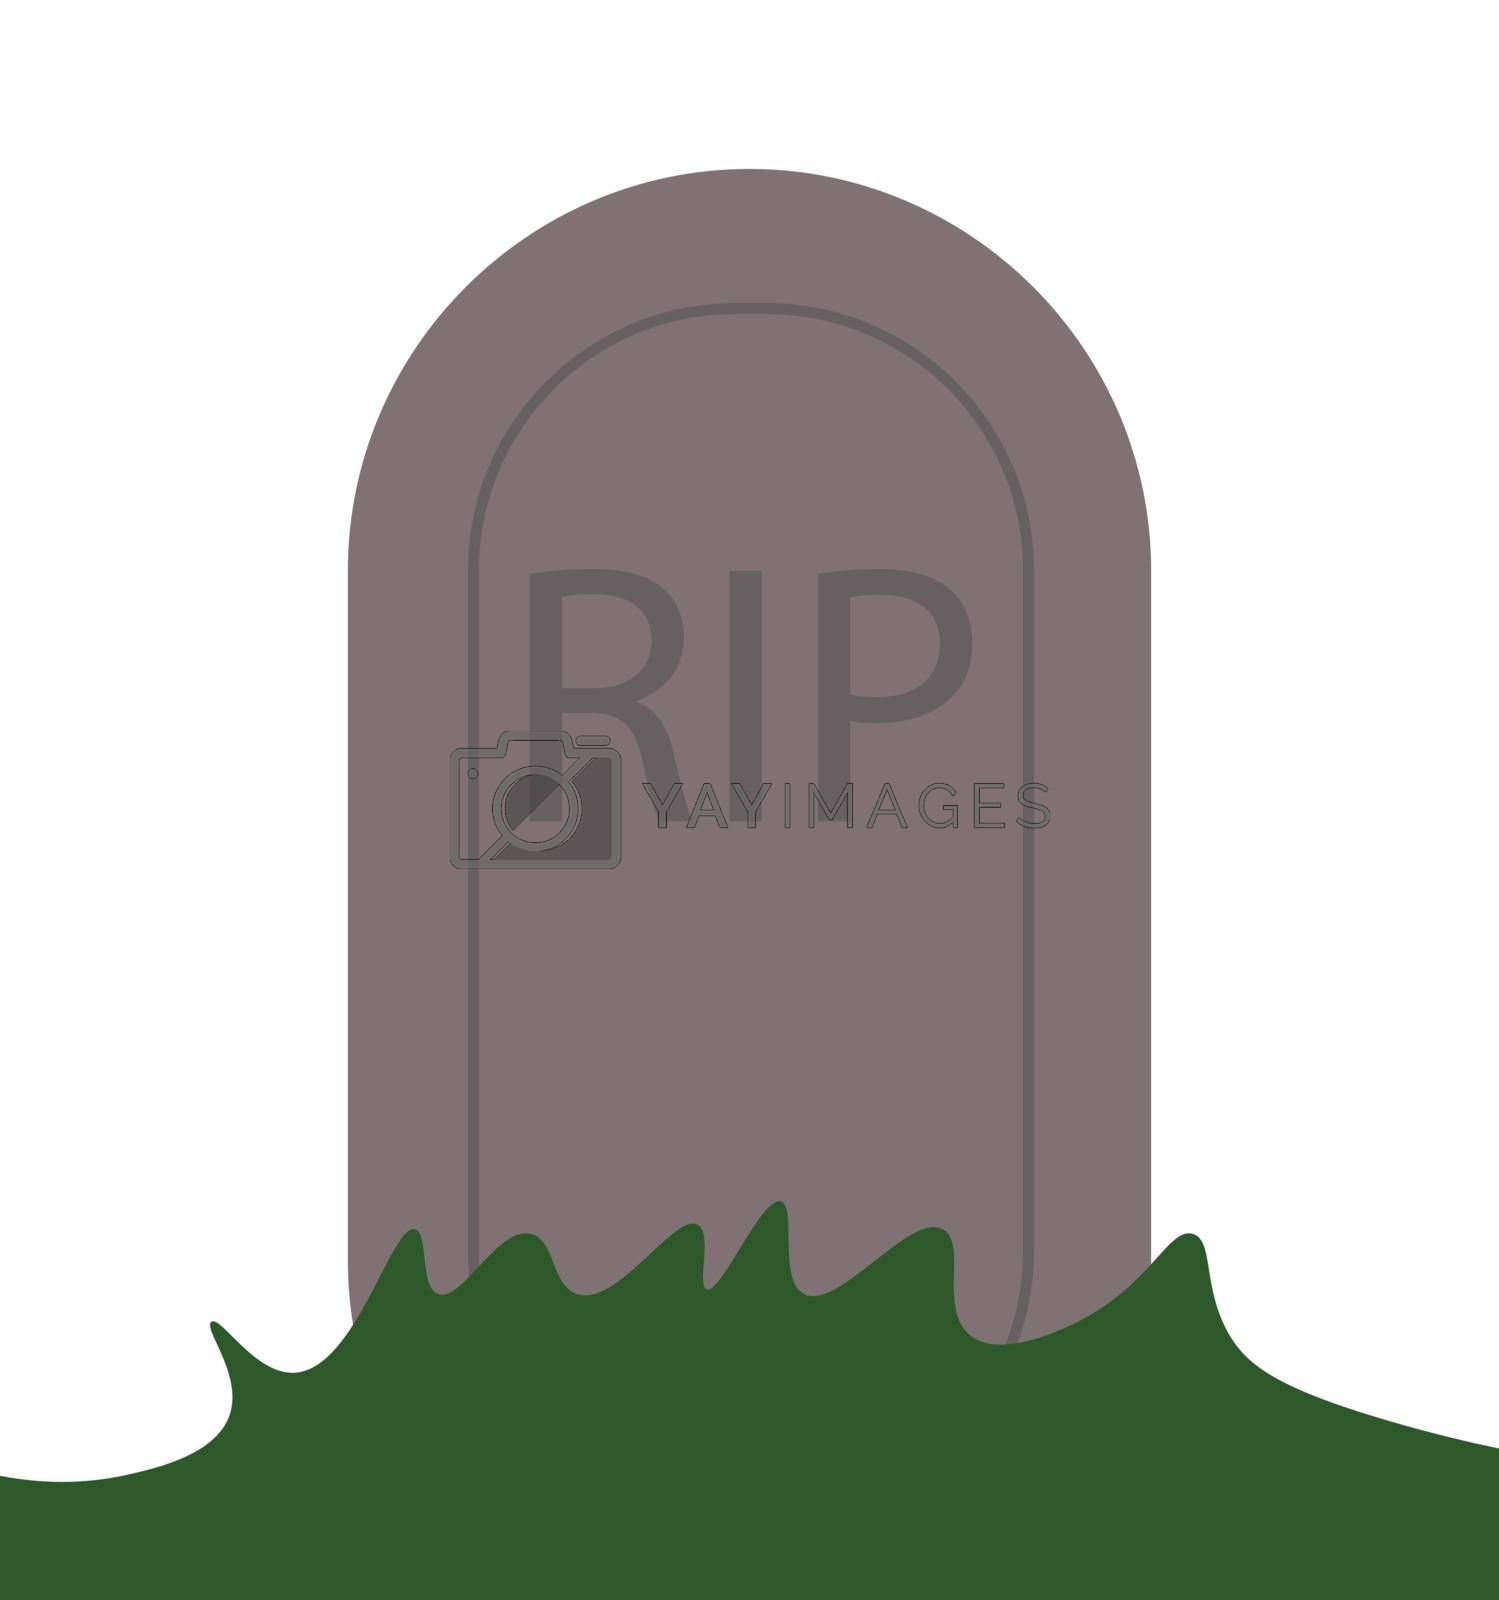 RIP grave vector icon, death symbol. Modern, simple flat vector illustration for web site or mobile app